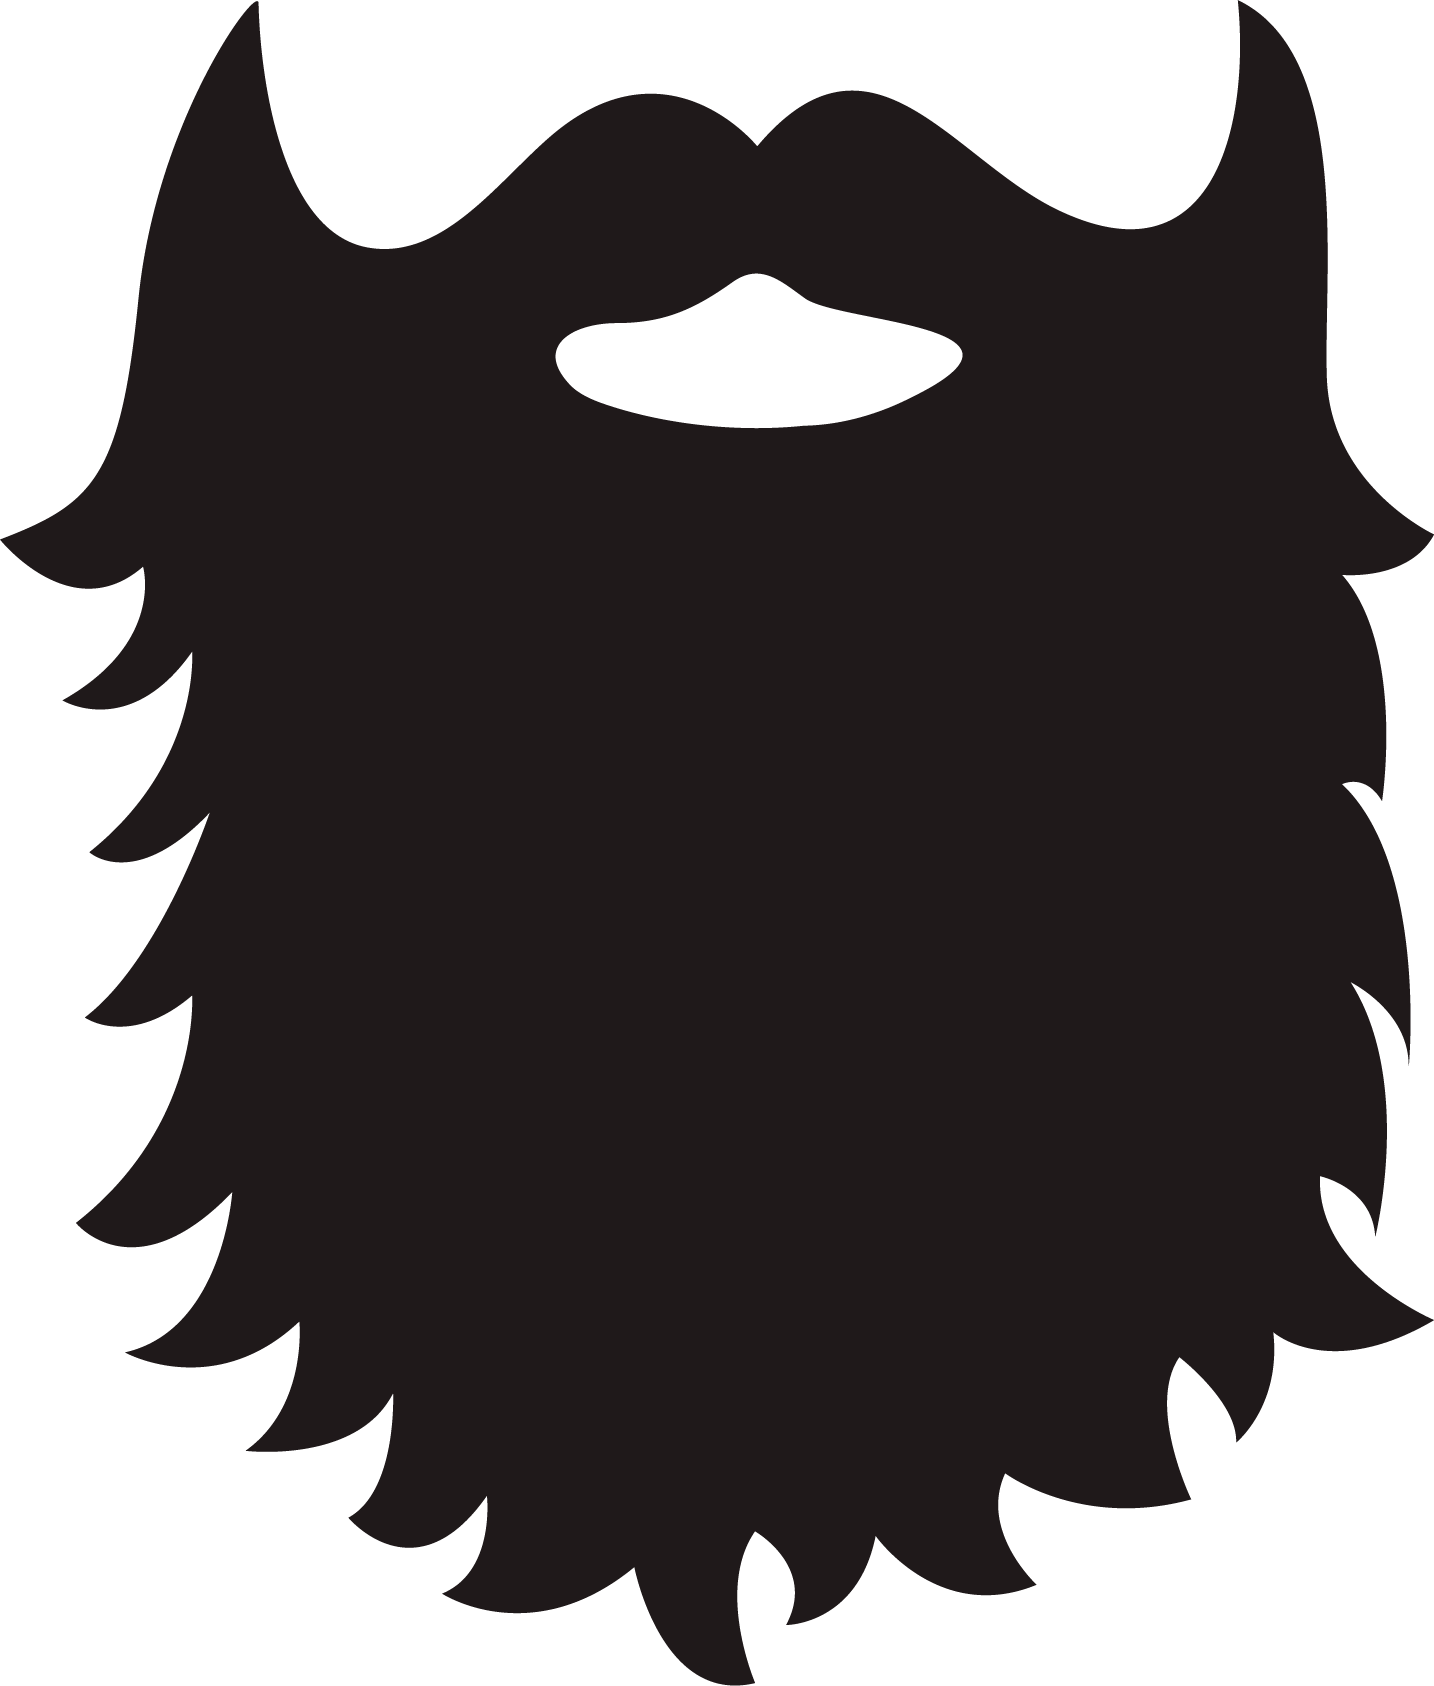 Beard png transparent free. Clipart mustache simple